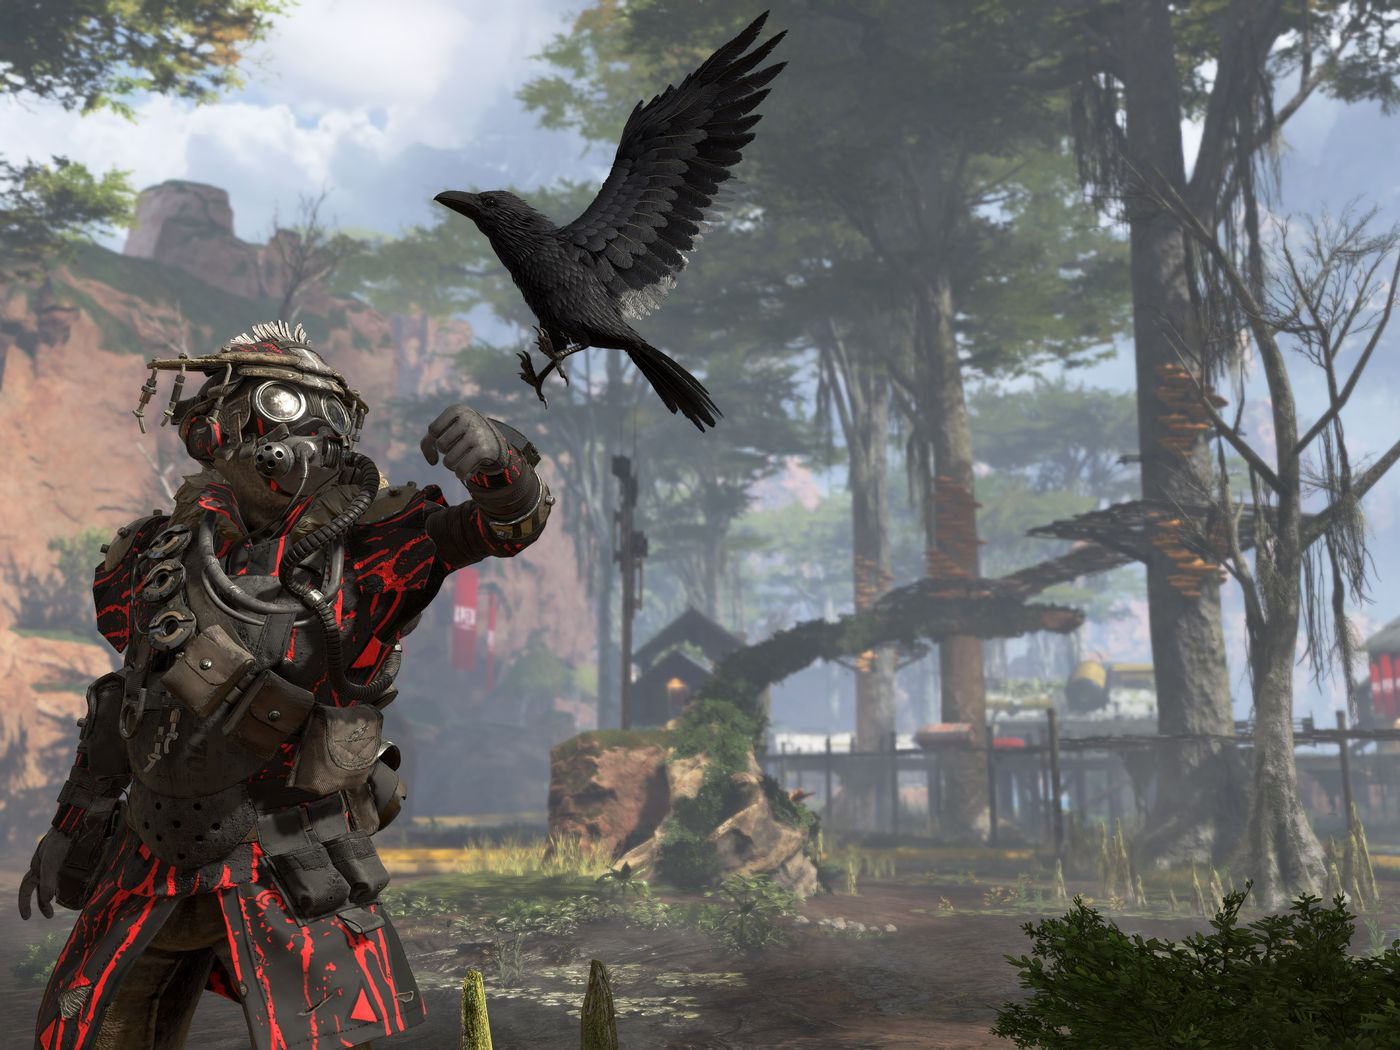 Respawn is 'putting a lot on the line' with Apex Legends' surprise launch -  The Verge